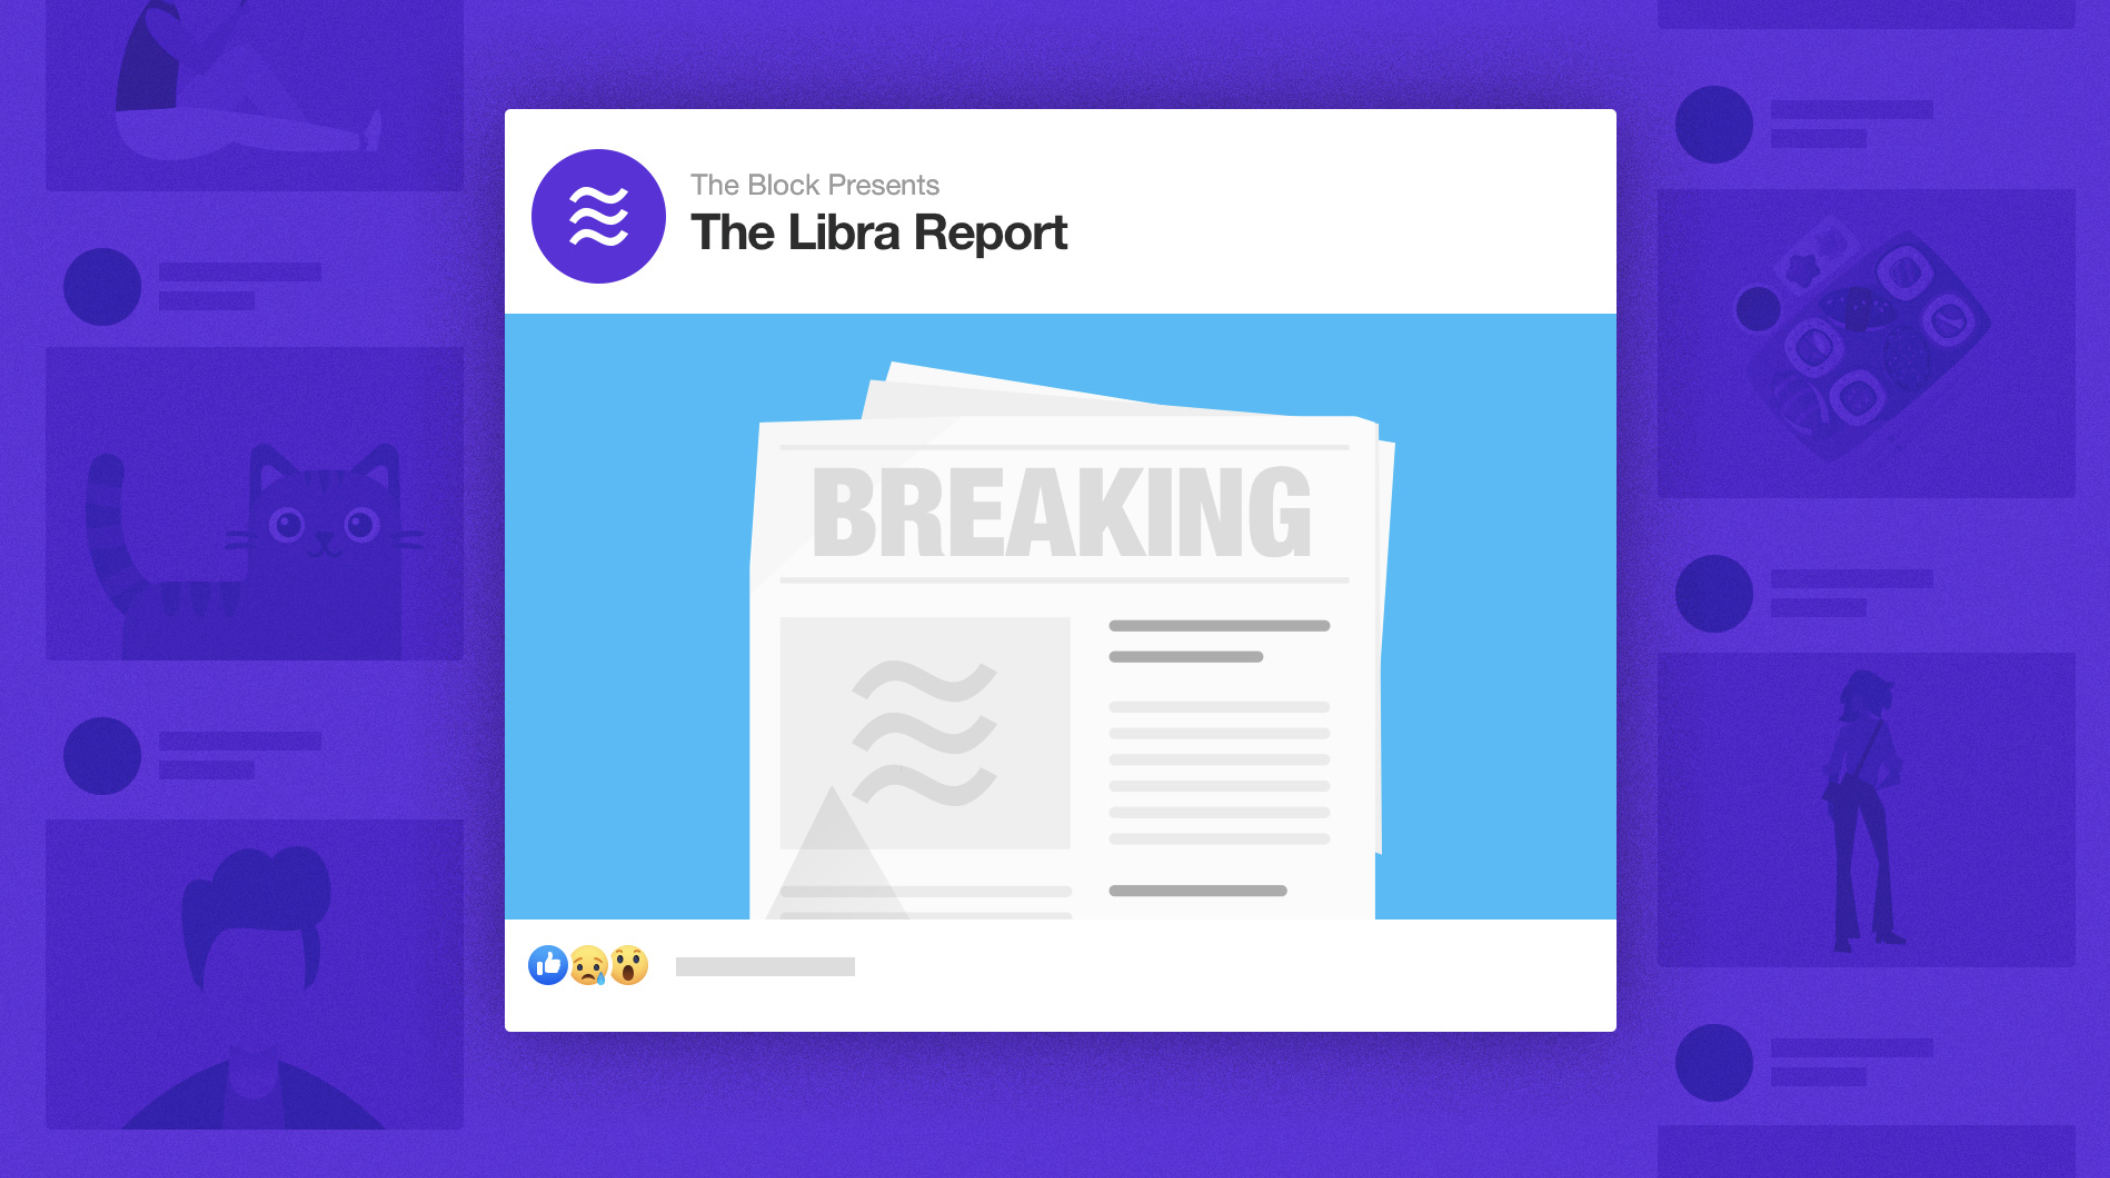 Facebook releases plan for its Libra cryptocurrency to 'meet